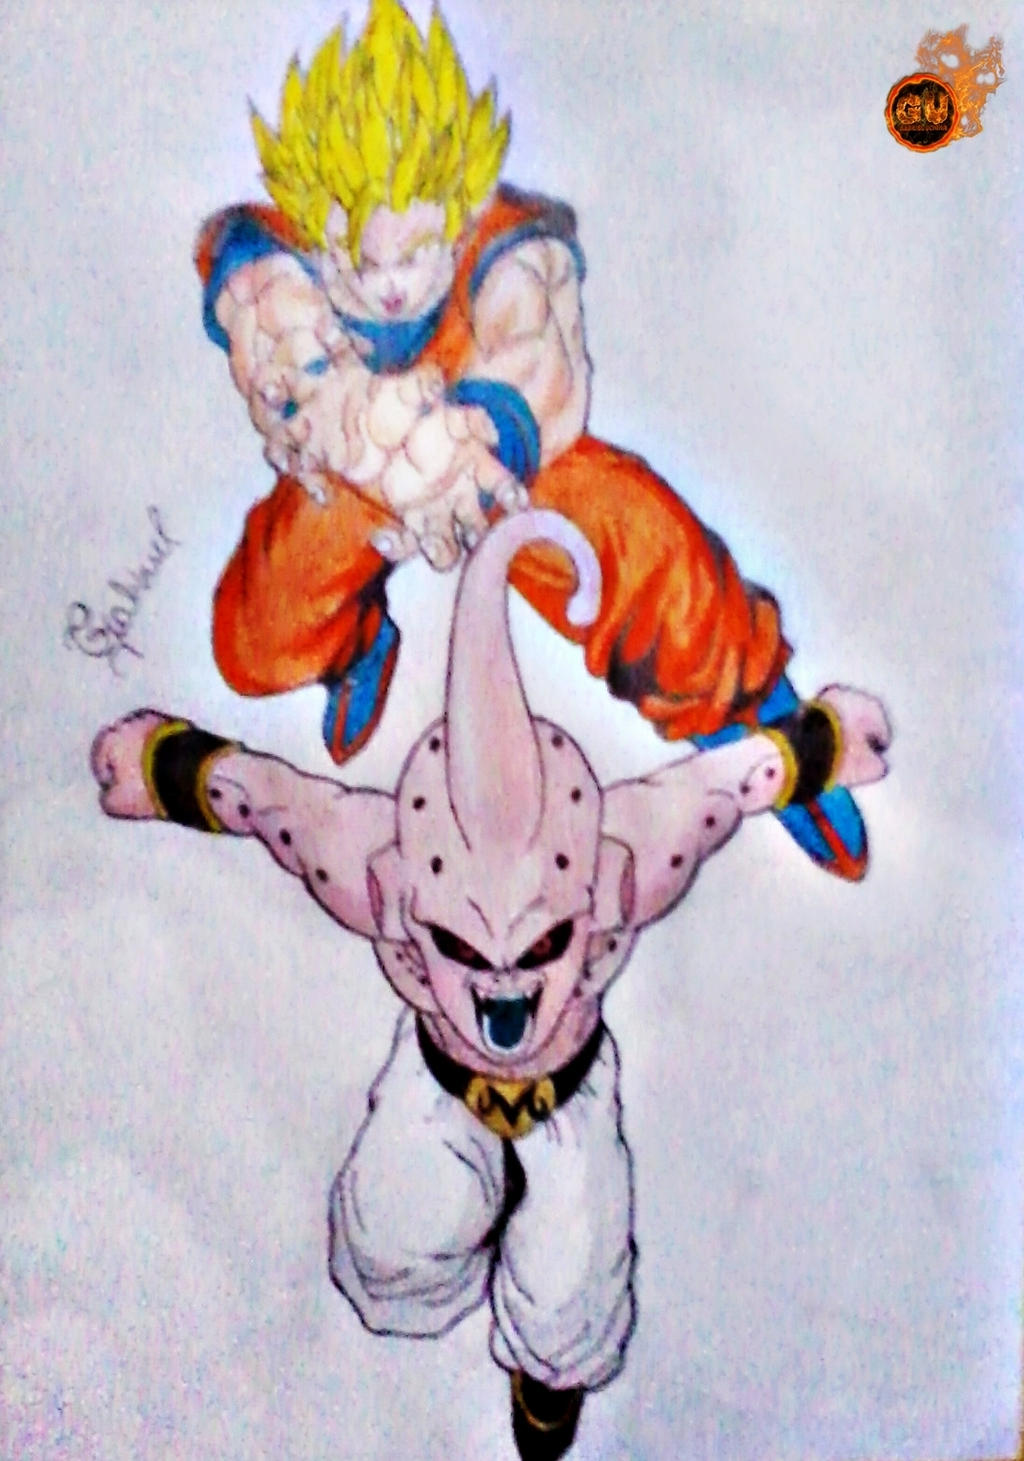 son goku vs kid buu dragon ball z by thesaikoof on